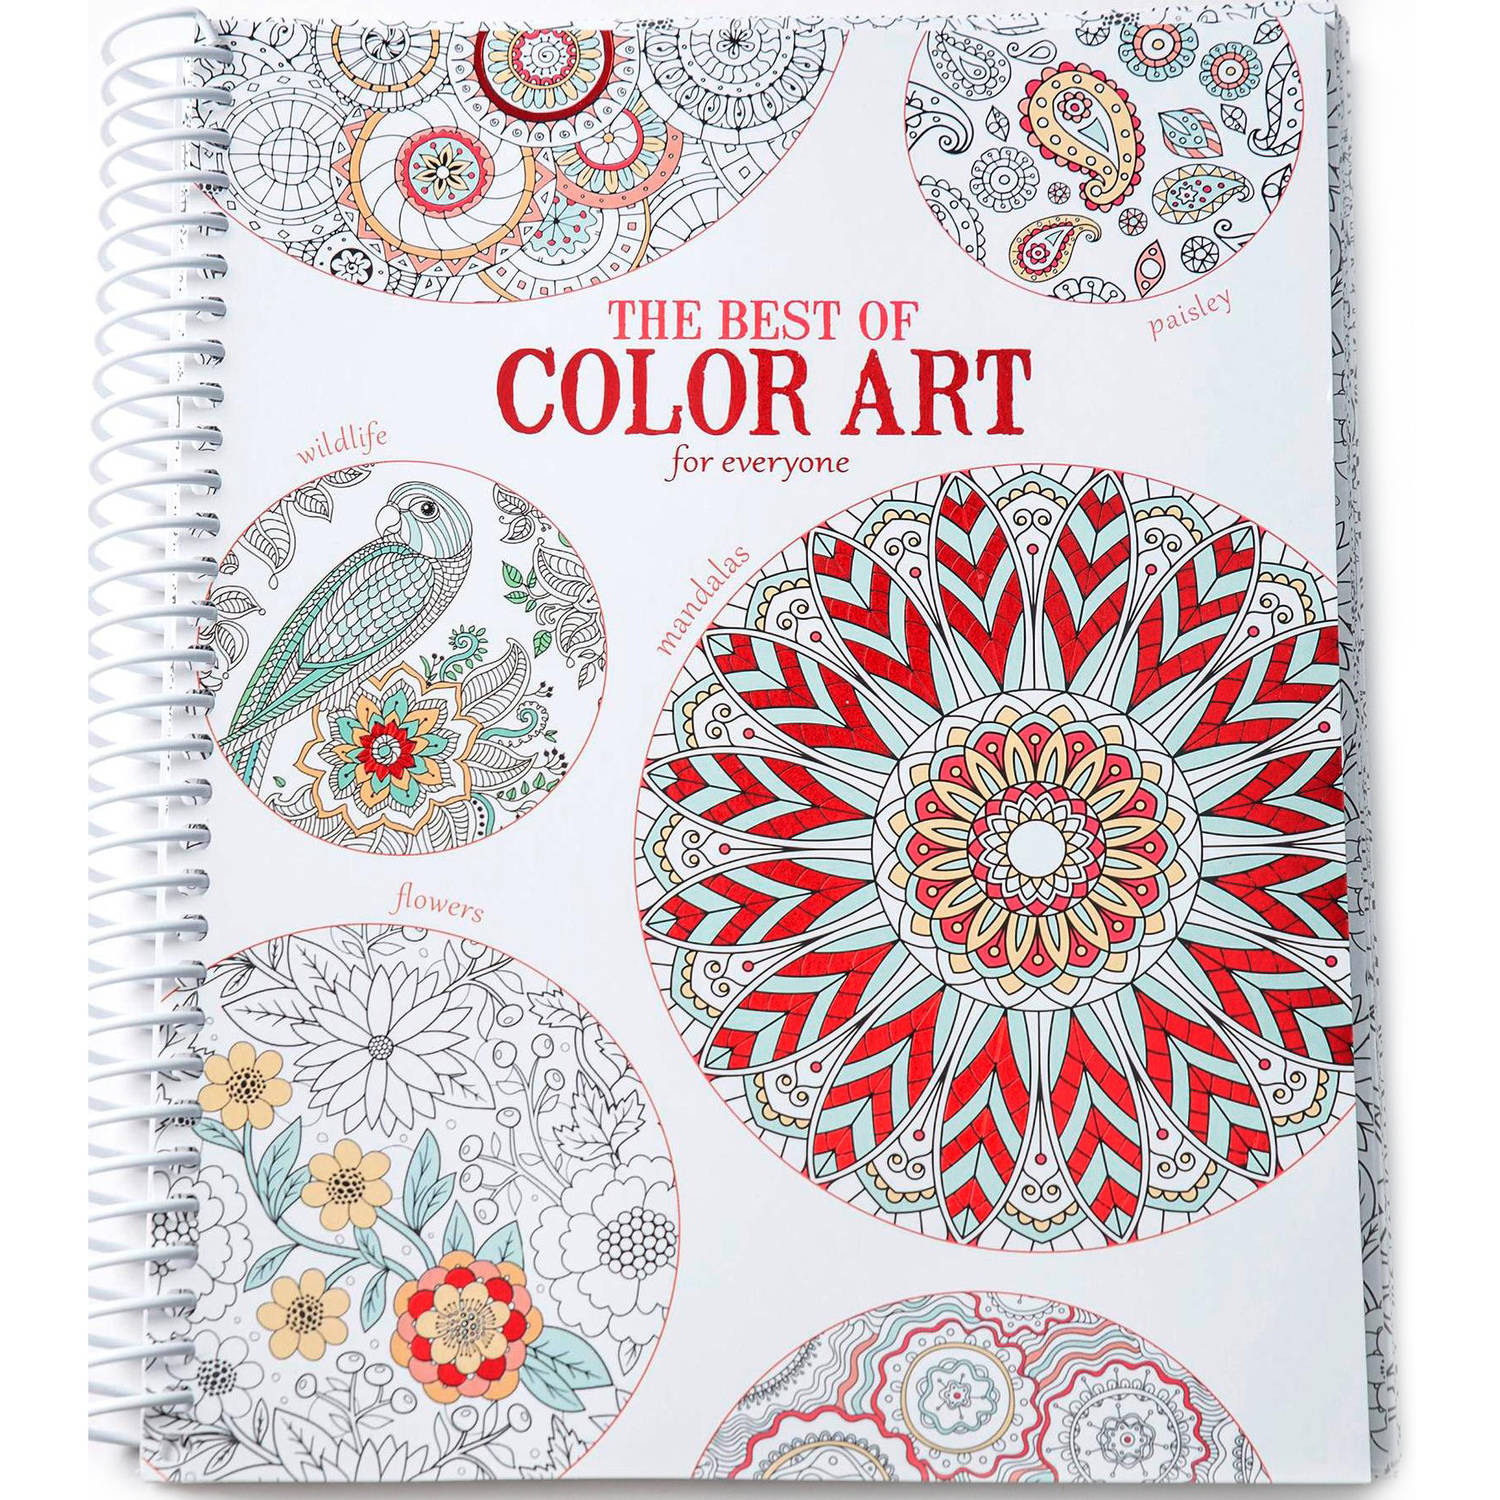 Leisure arts inc the best of color art for everyone coloring book 1 each walmart com